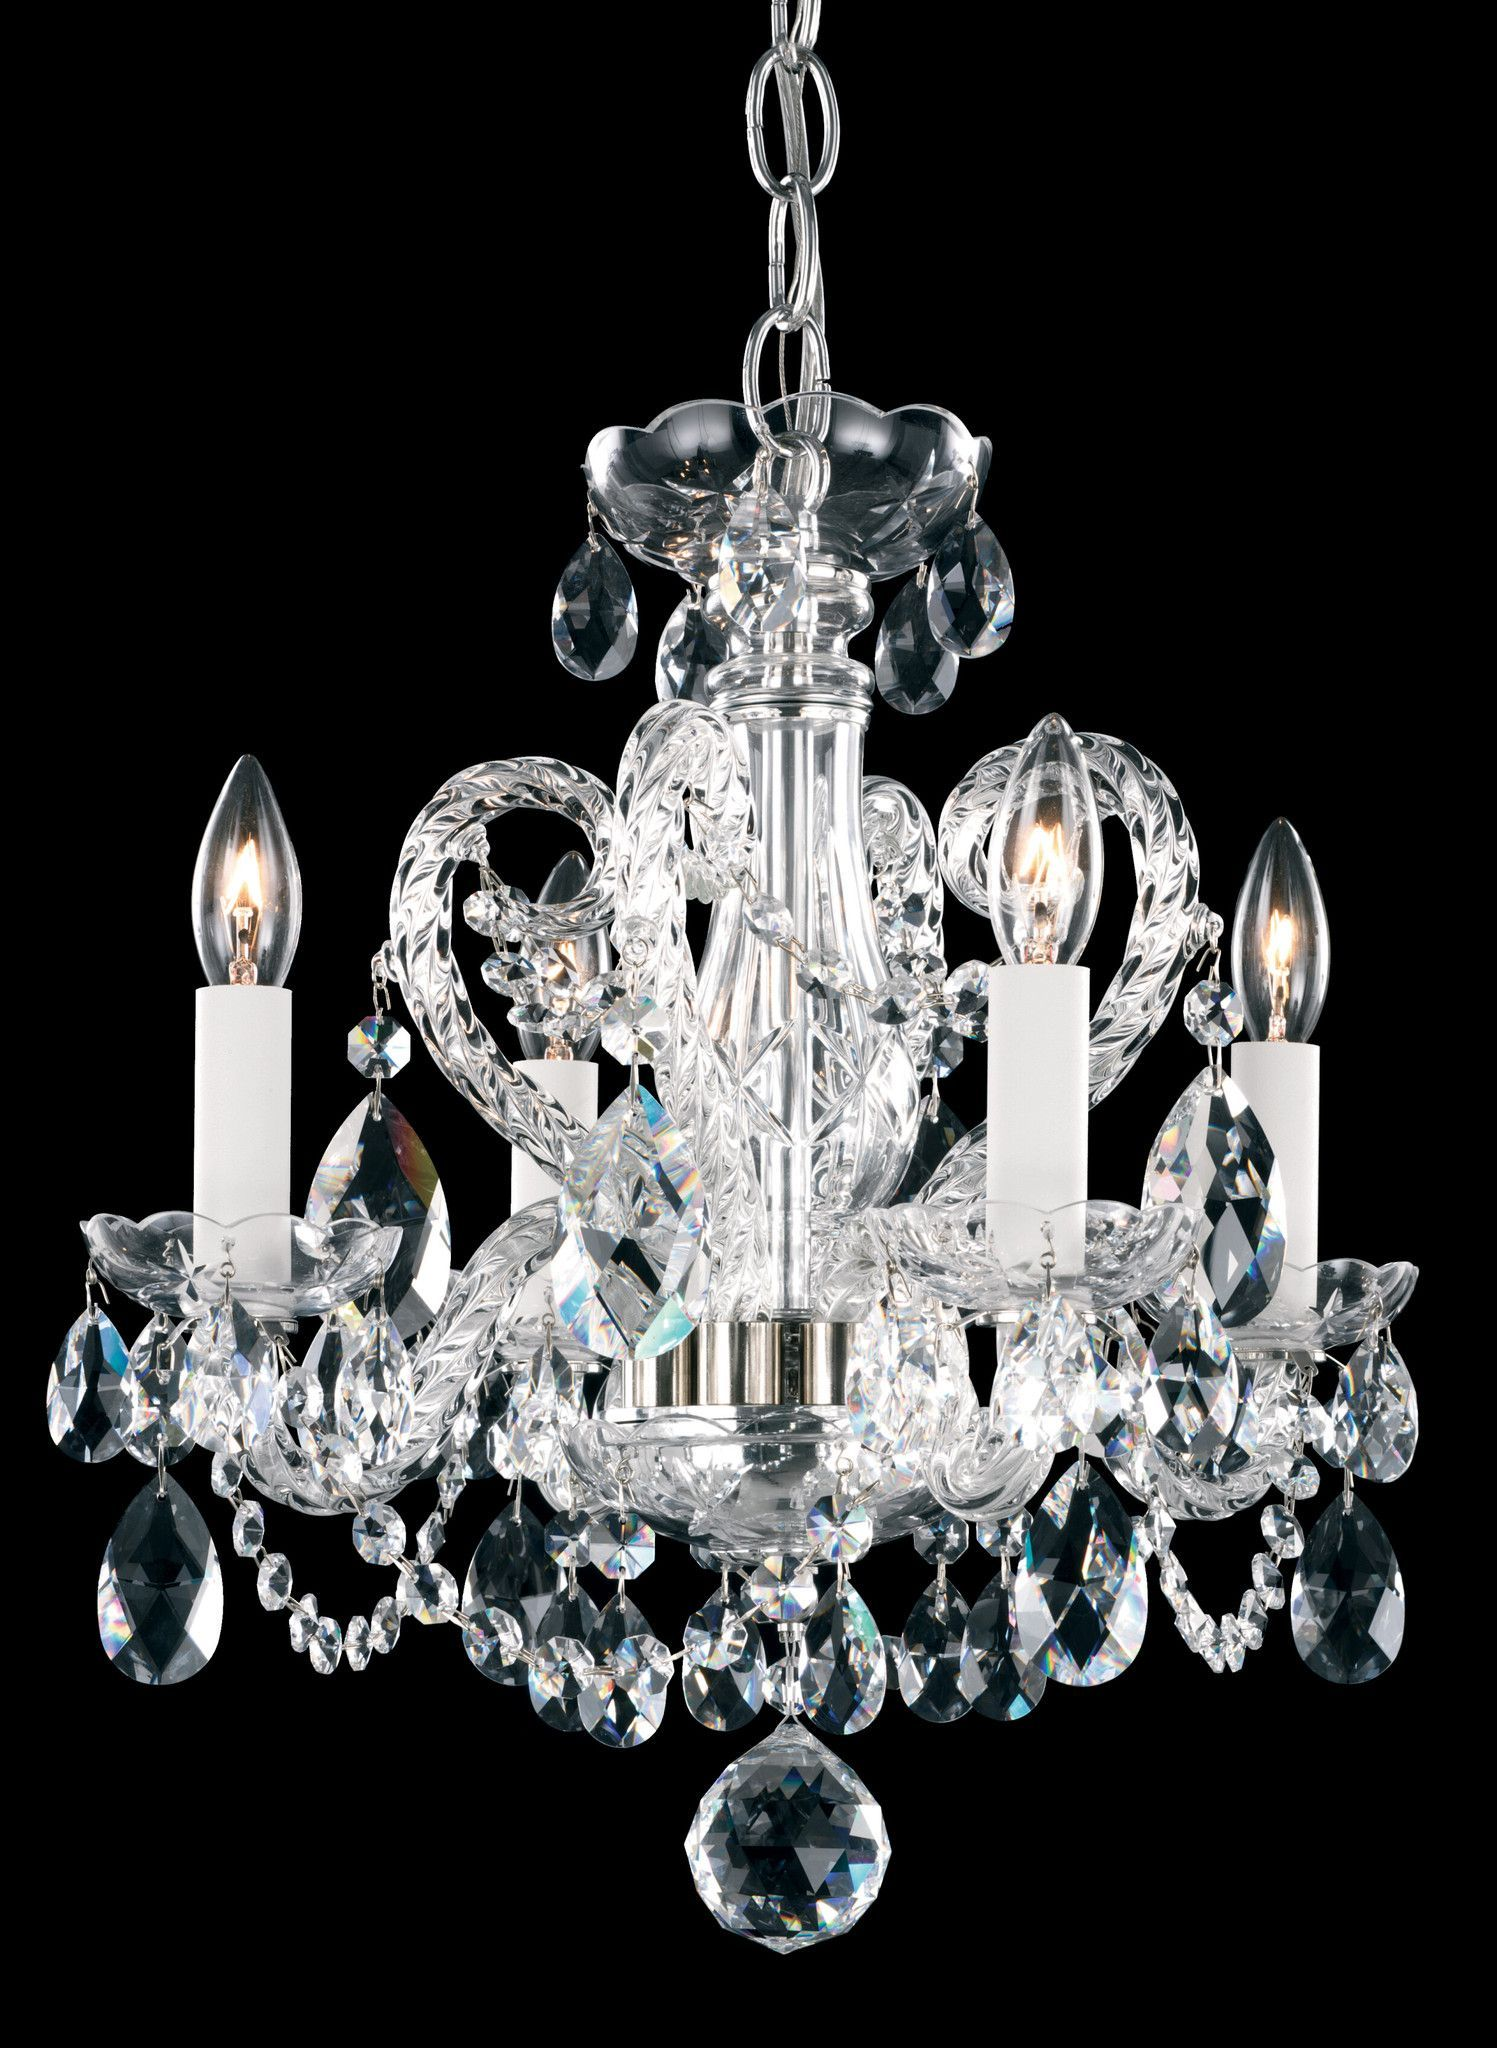 Schonbek nv3904 novielle 14 inch mini chandelier products the schonbek novielle is a crystal mini chandelier available in aurelia polished gold and polished silver finishe crystal style is sure to complement arubaitofo Choice Image